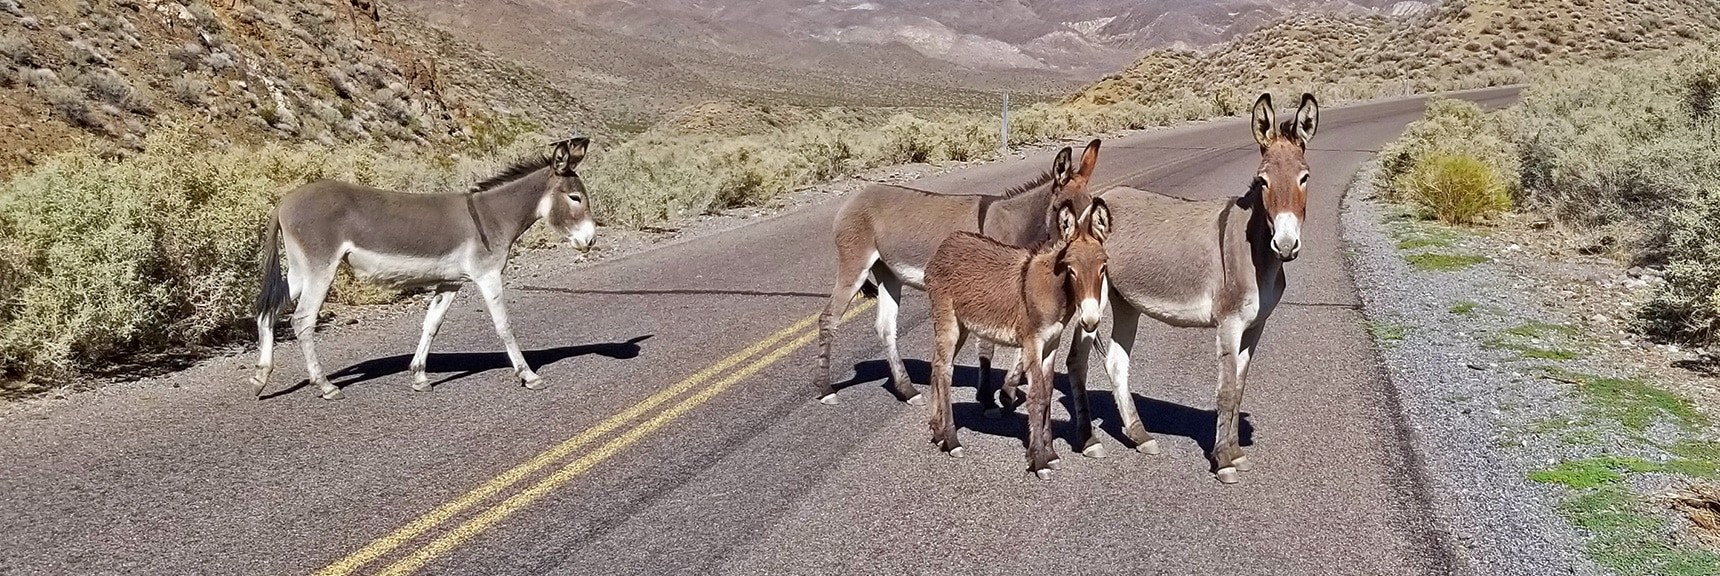 Wild Mule Family on Charcoal Kiln Road | Charcoal Kilns | Death Valley, California